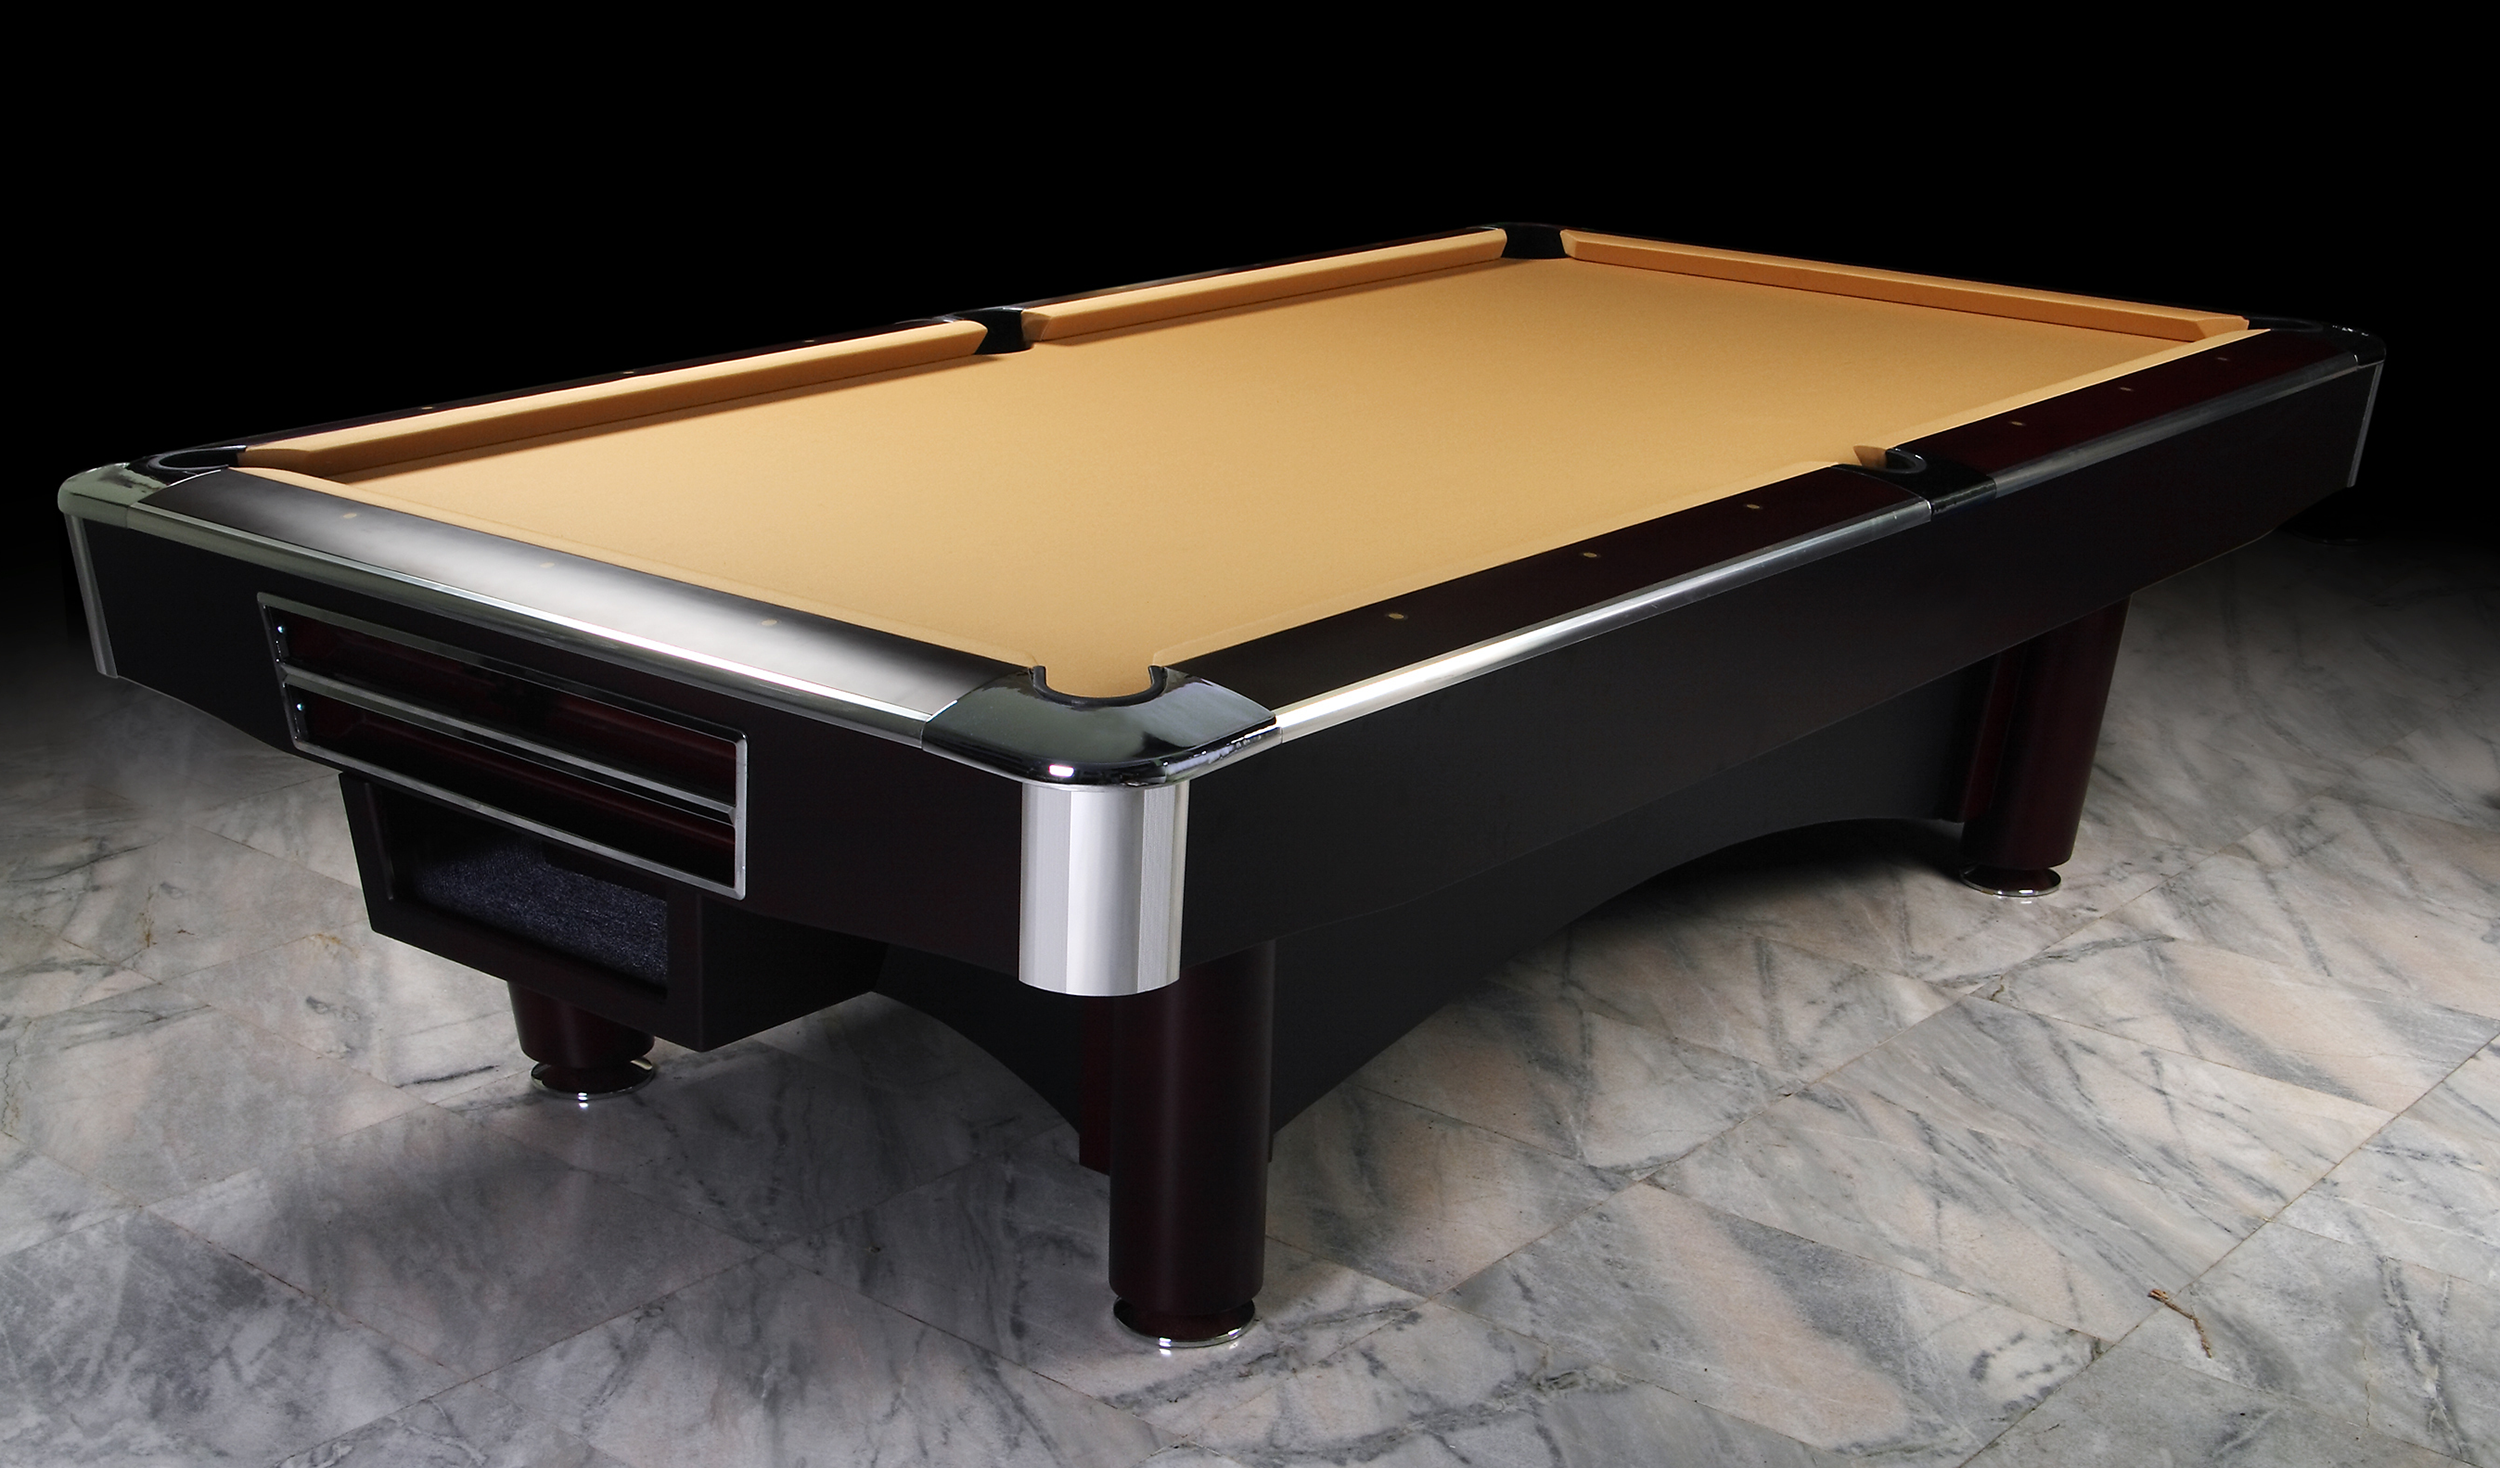 Gallery Professional Billiards Atlanta - Pool table assembly service near me